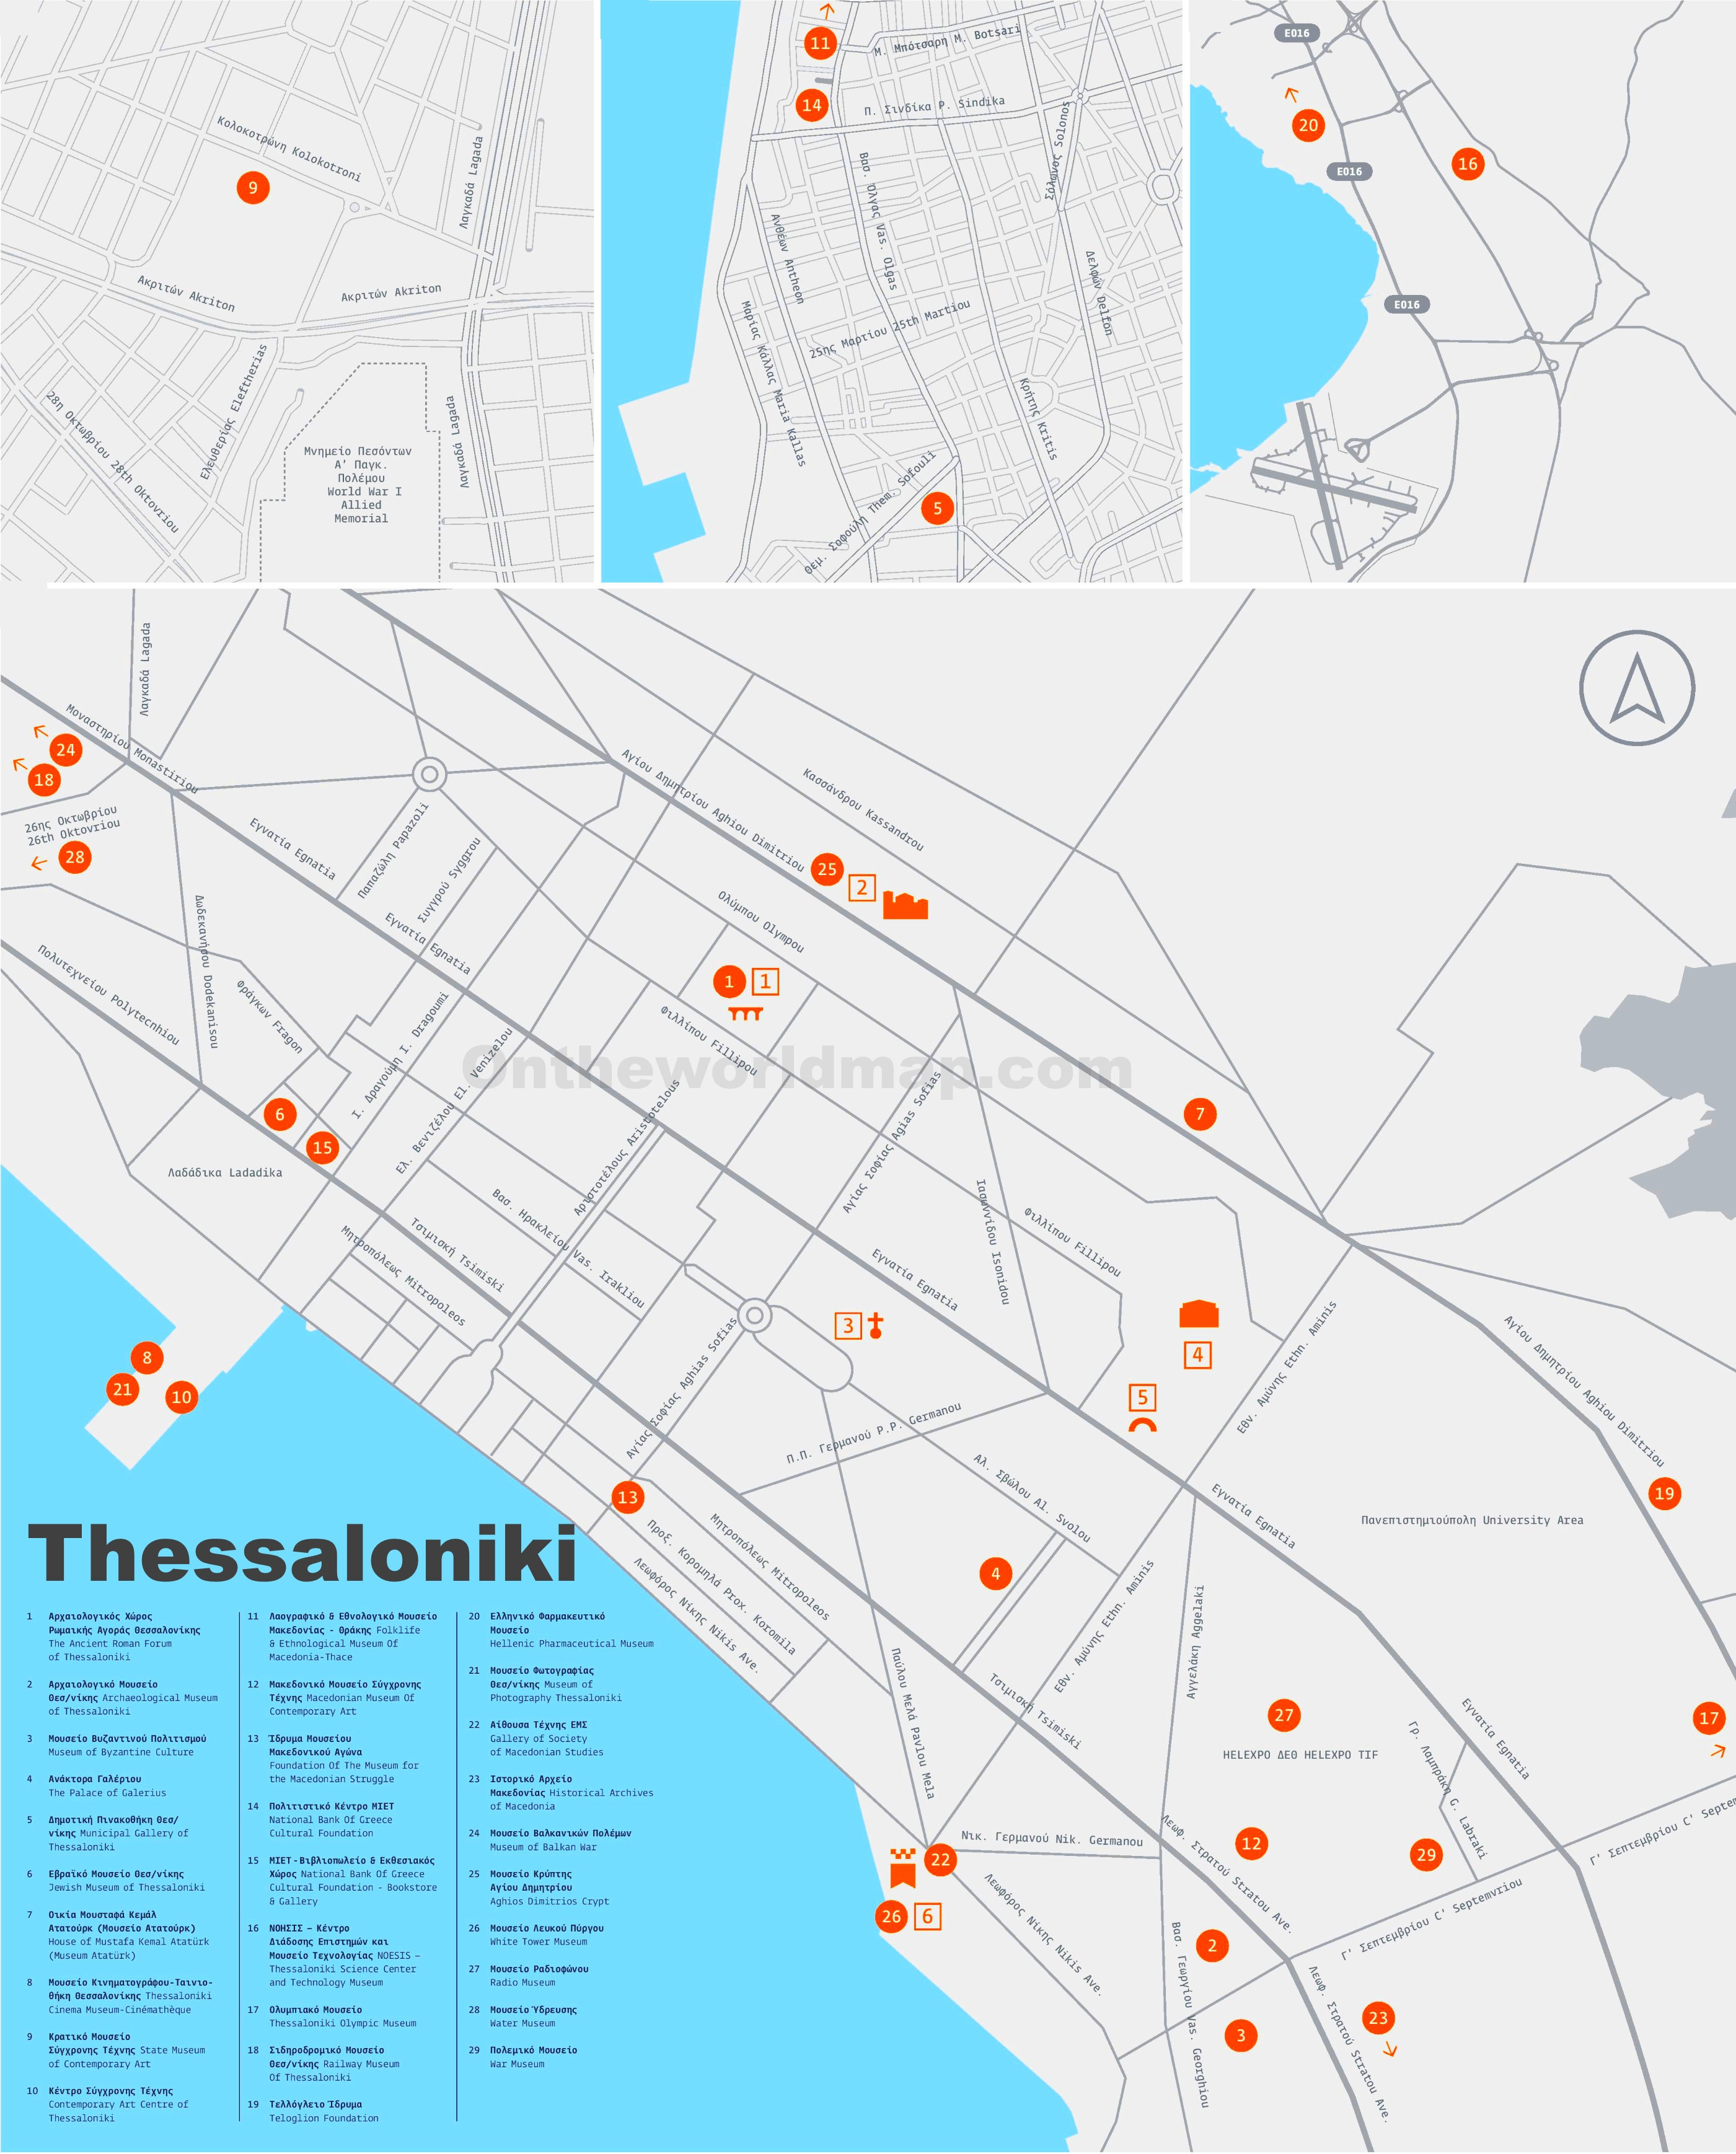 Thessaloniki museums map